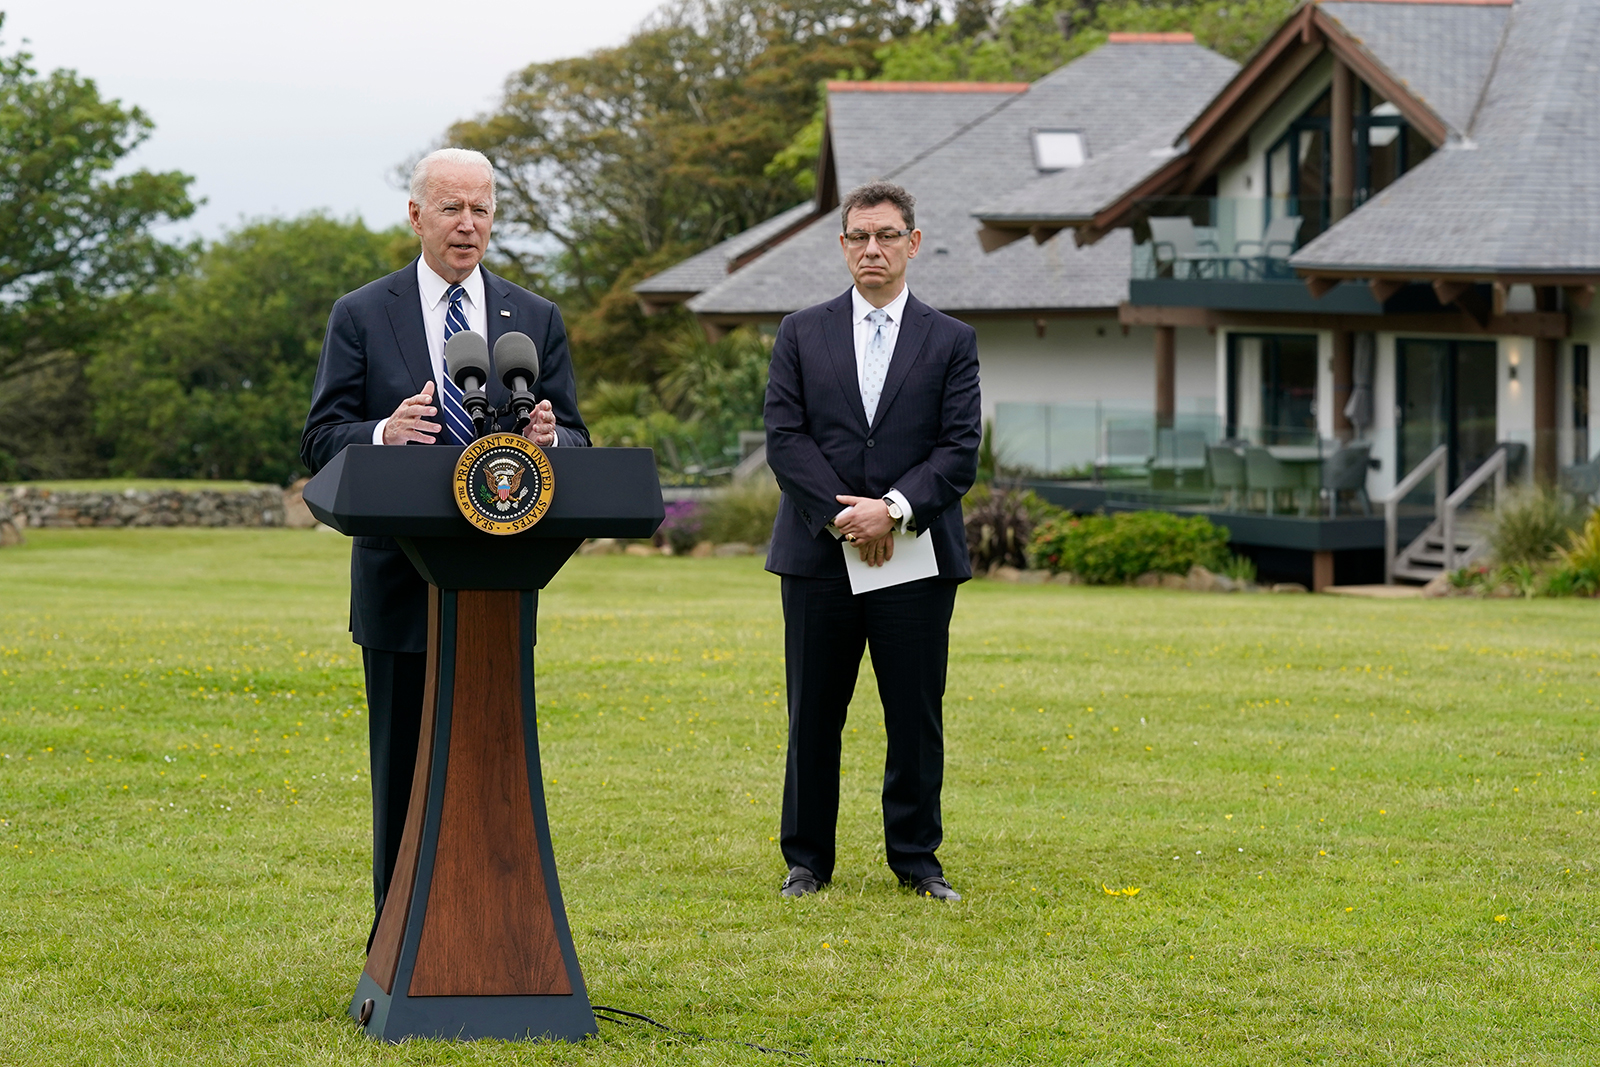 President Joe Biden speaks about his administration's global Covid-19 vaccination efforts ahead of the G-7 summit on Thursday in St. Ives, England.